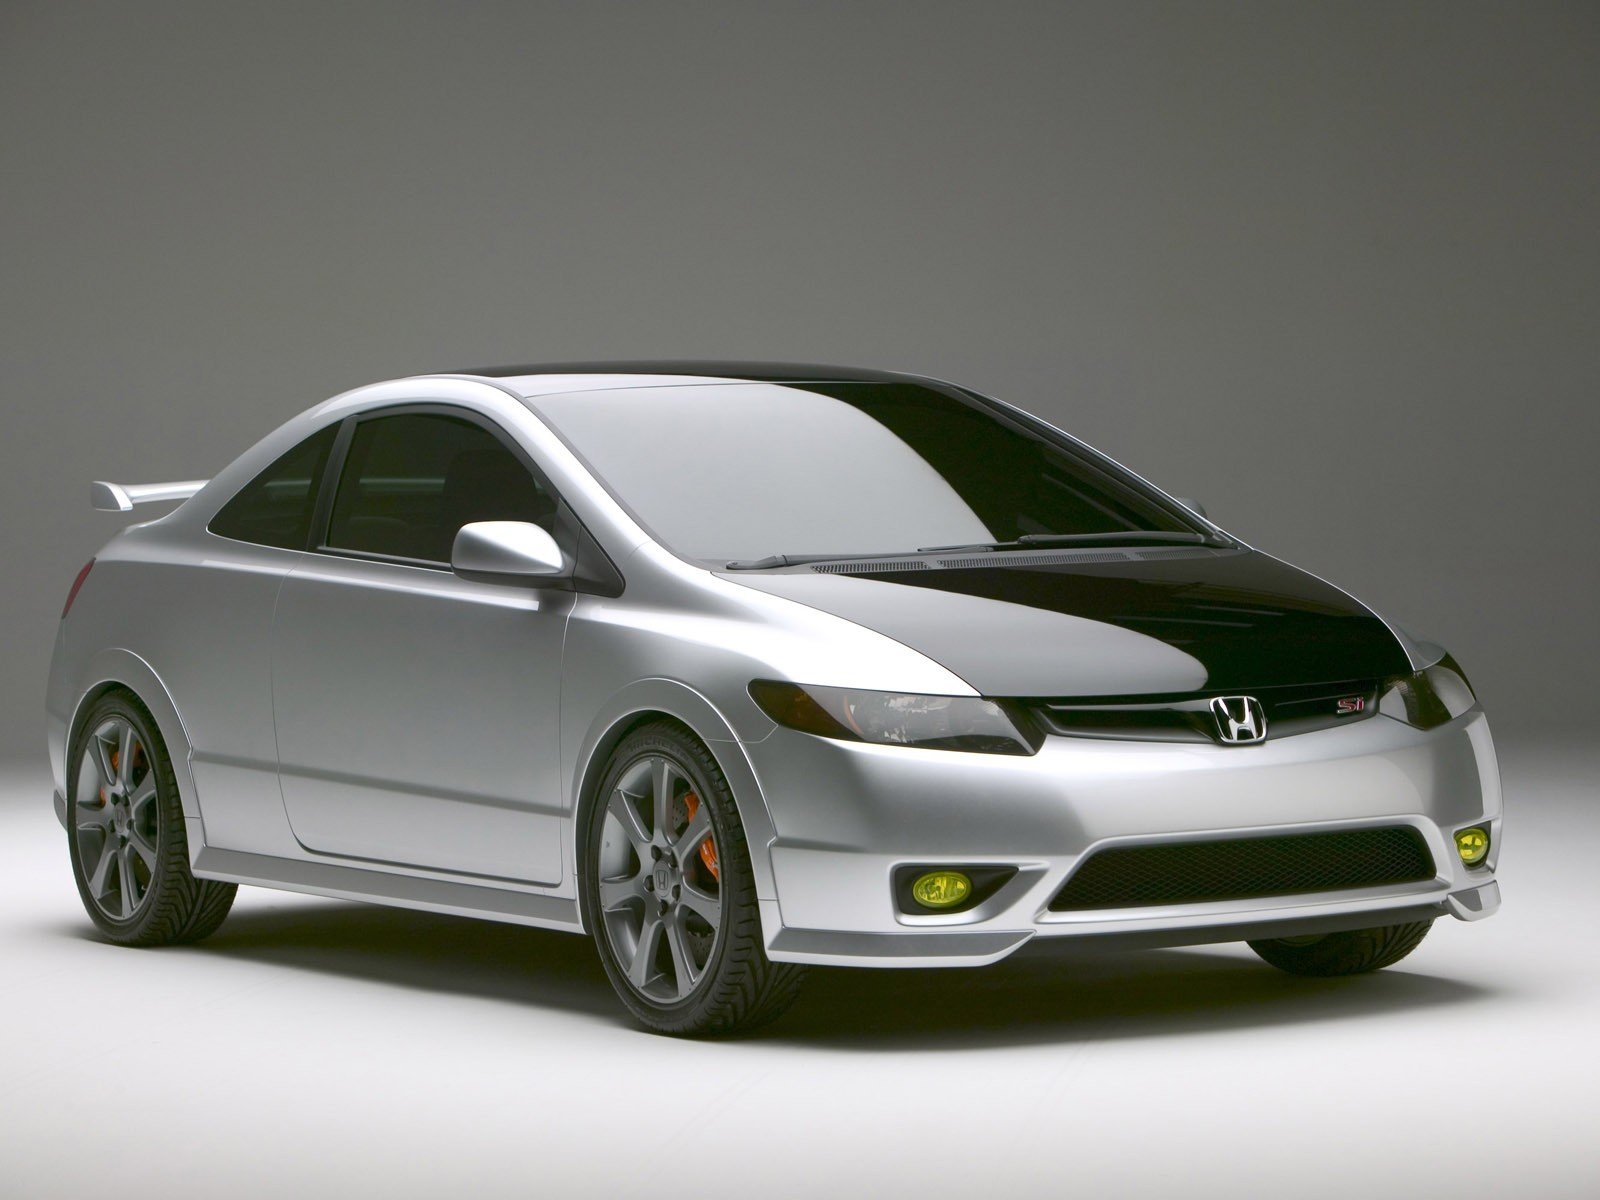 Honda Civic Wallpaper Wallpaper